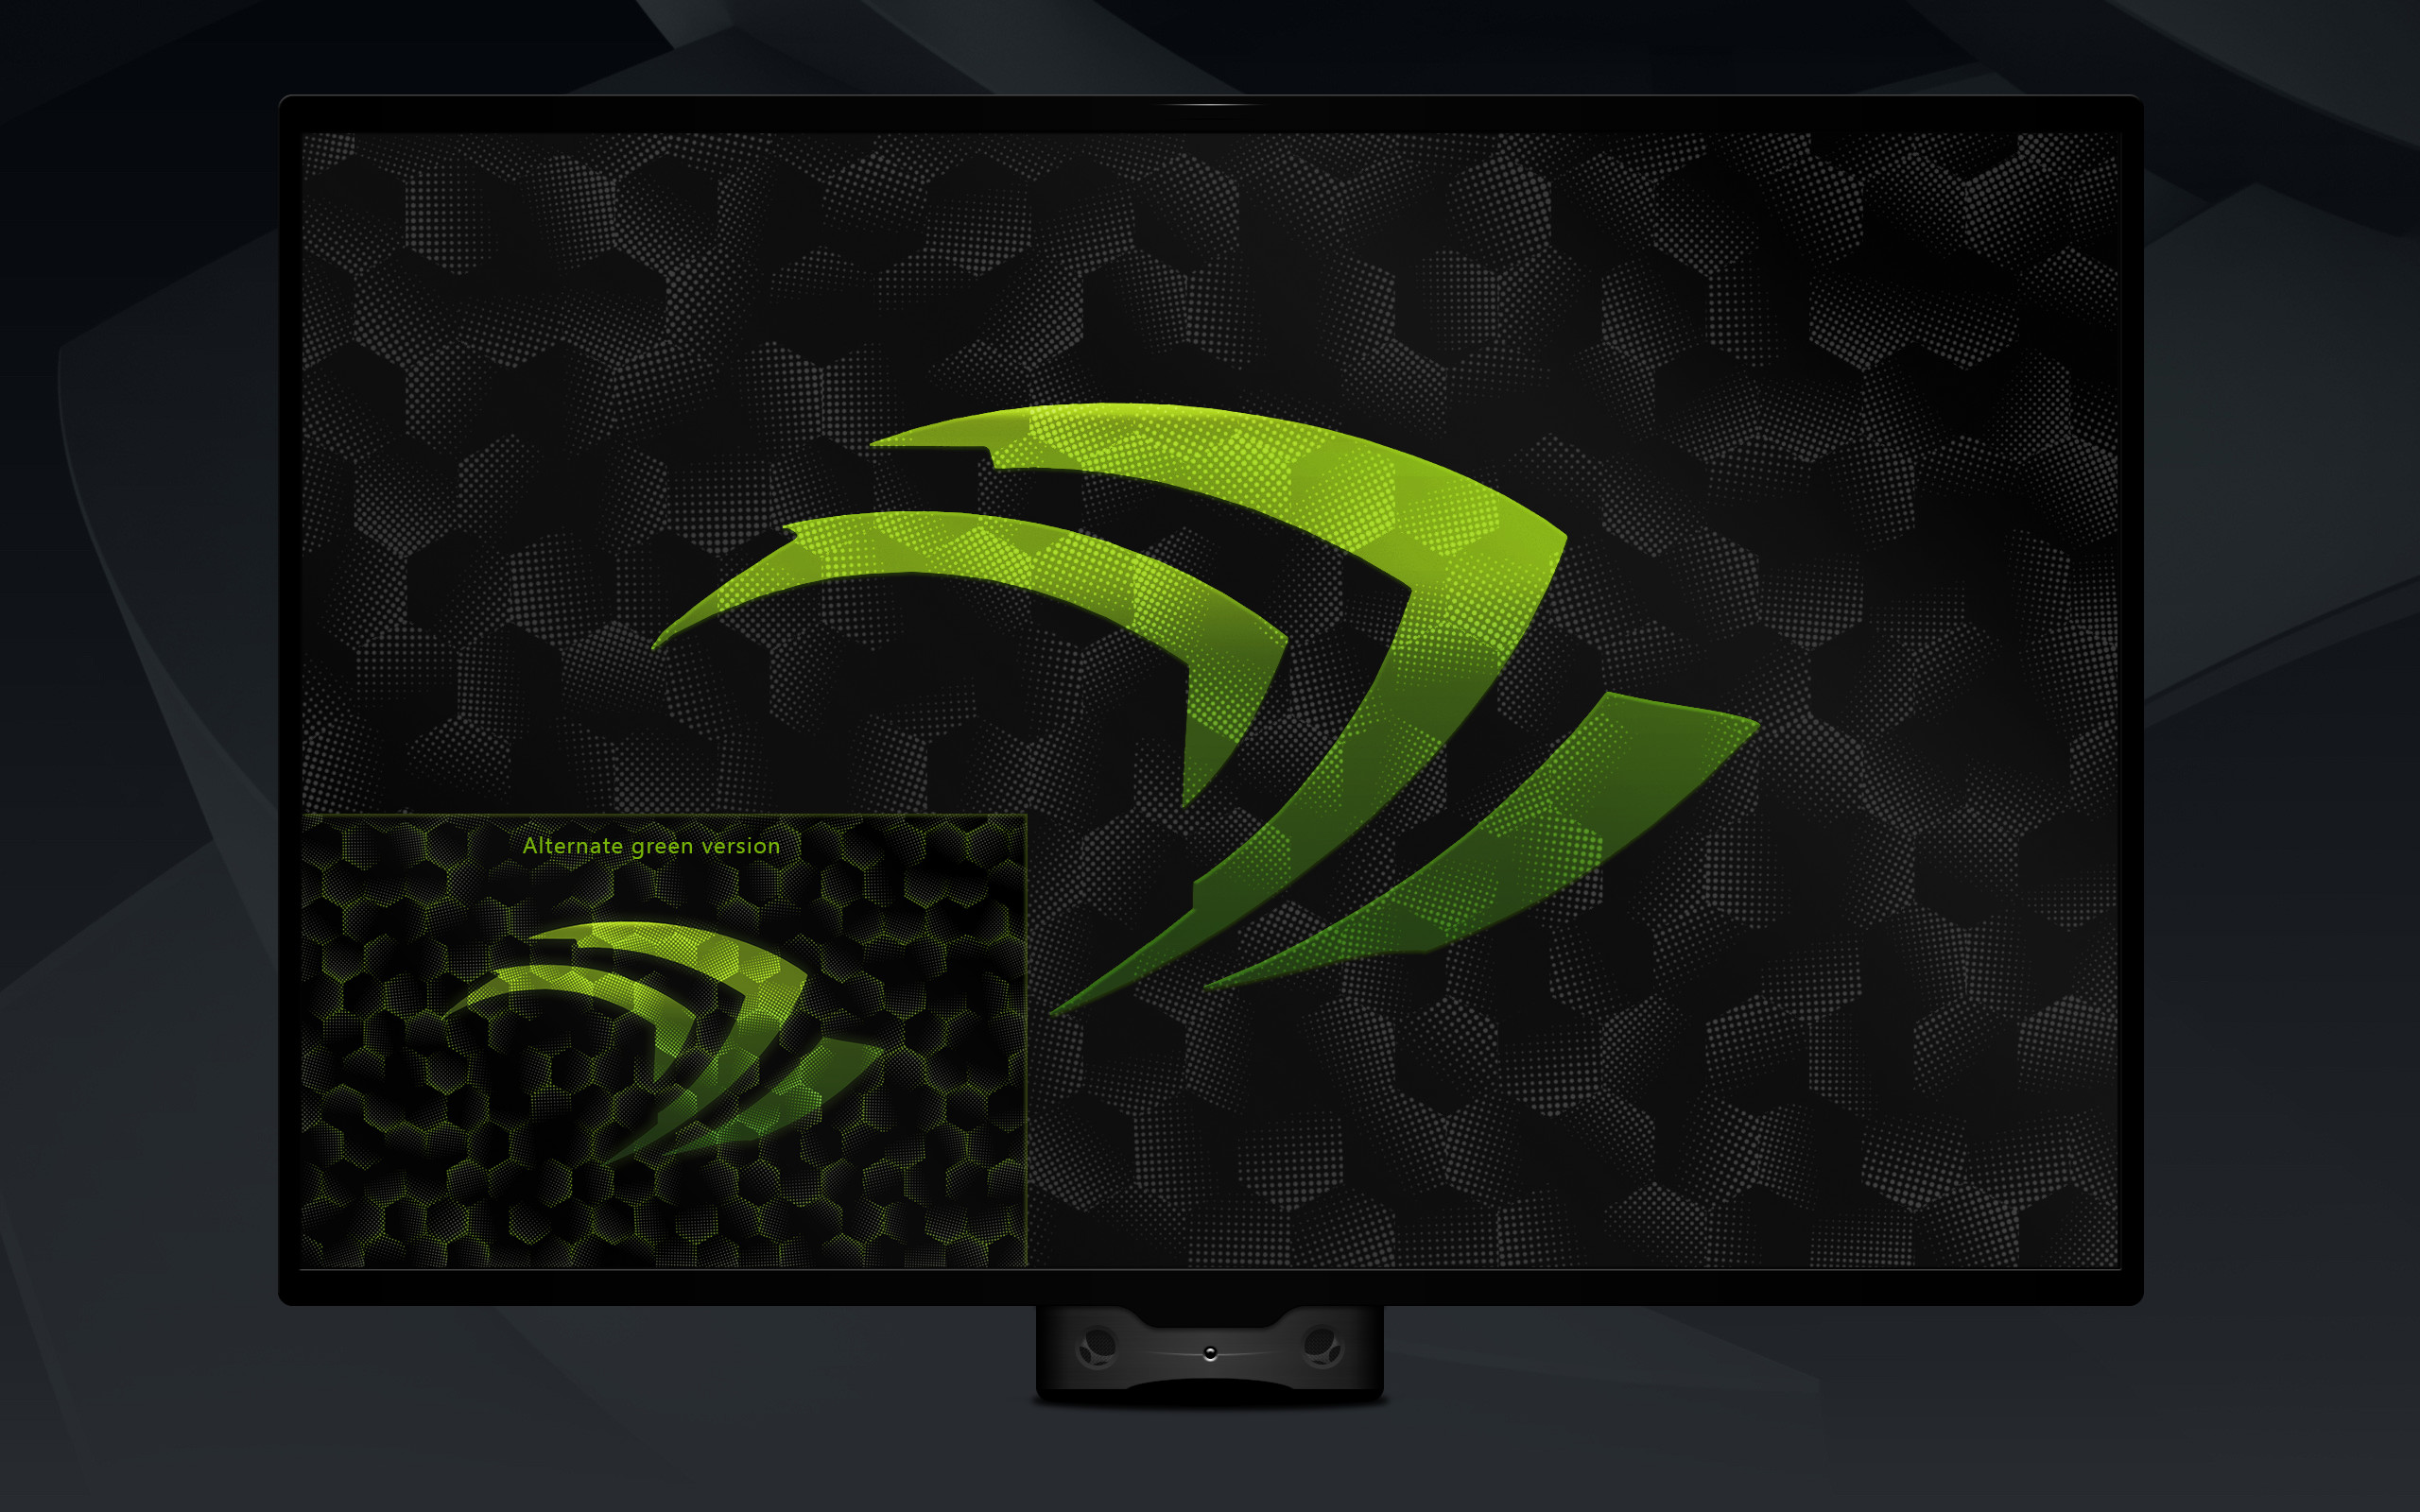 nVIDIA Geforce wallpapers by yorgash nVIDIA Geforce wallpapers by yorgash